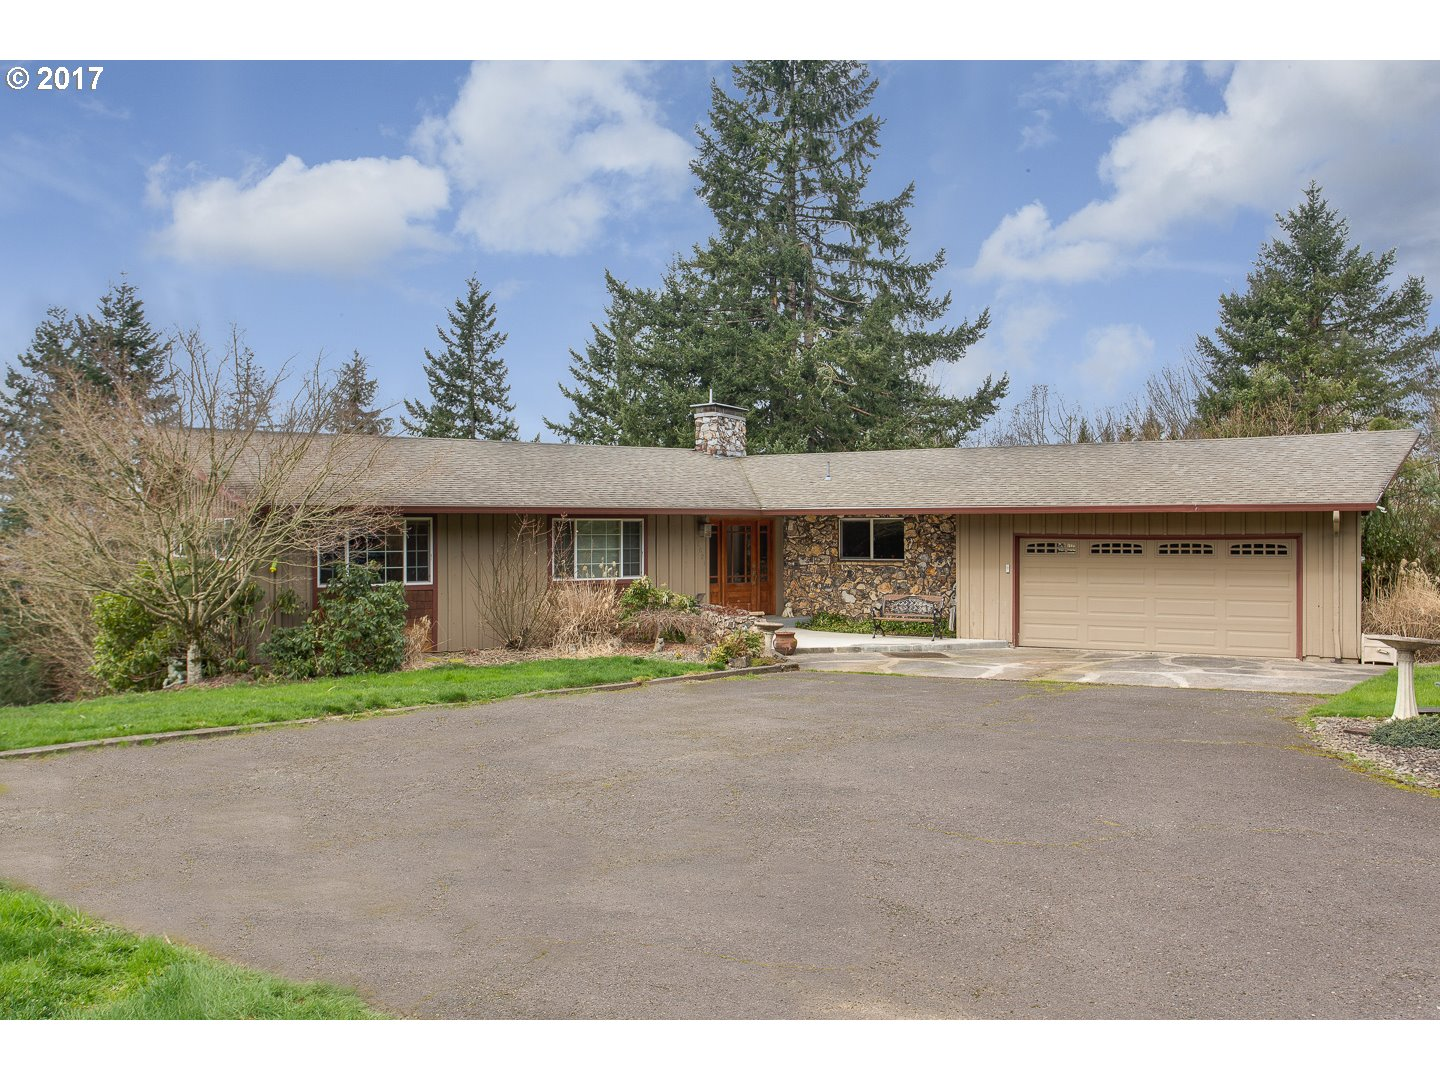 9621 SE TOWER DR, Damascus, OR 97089